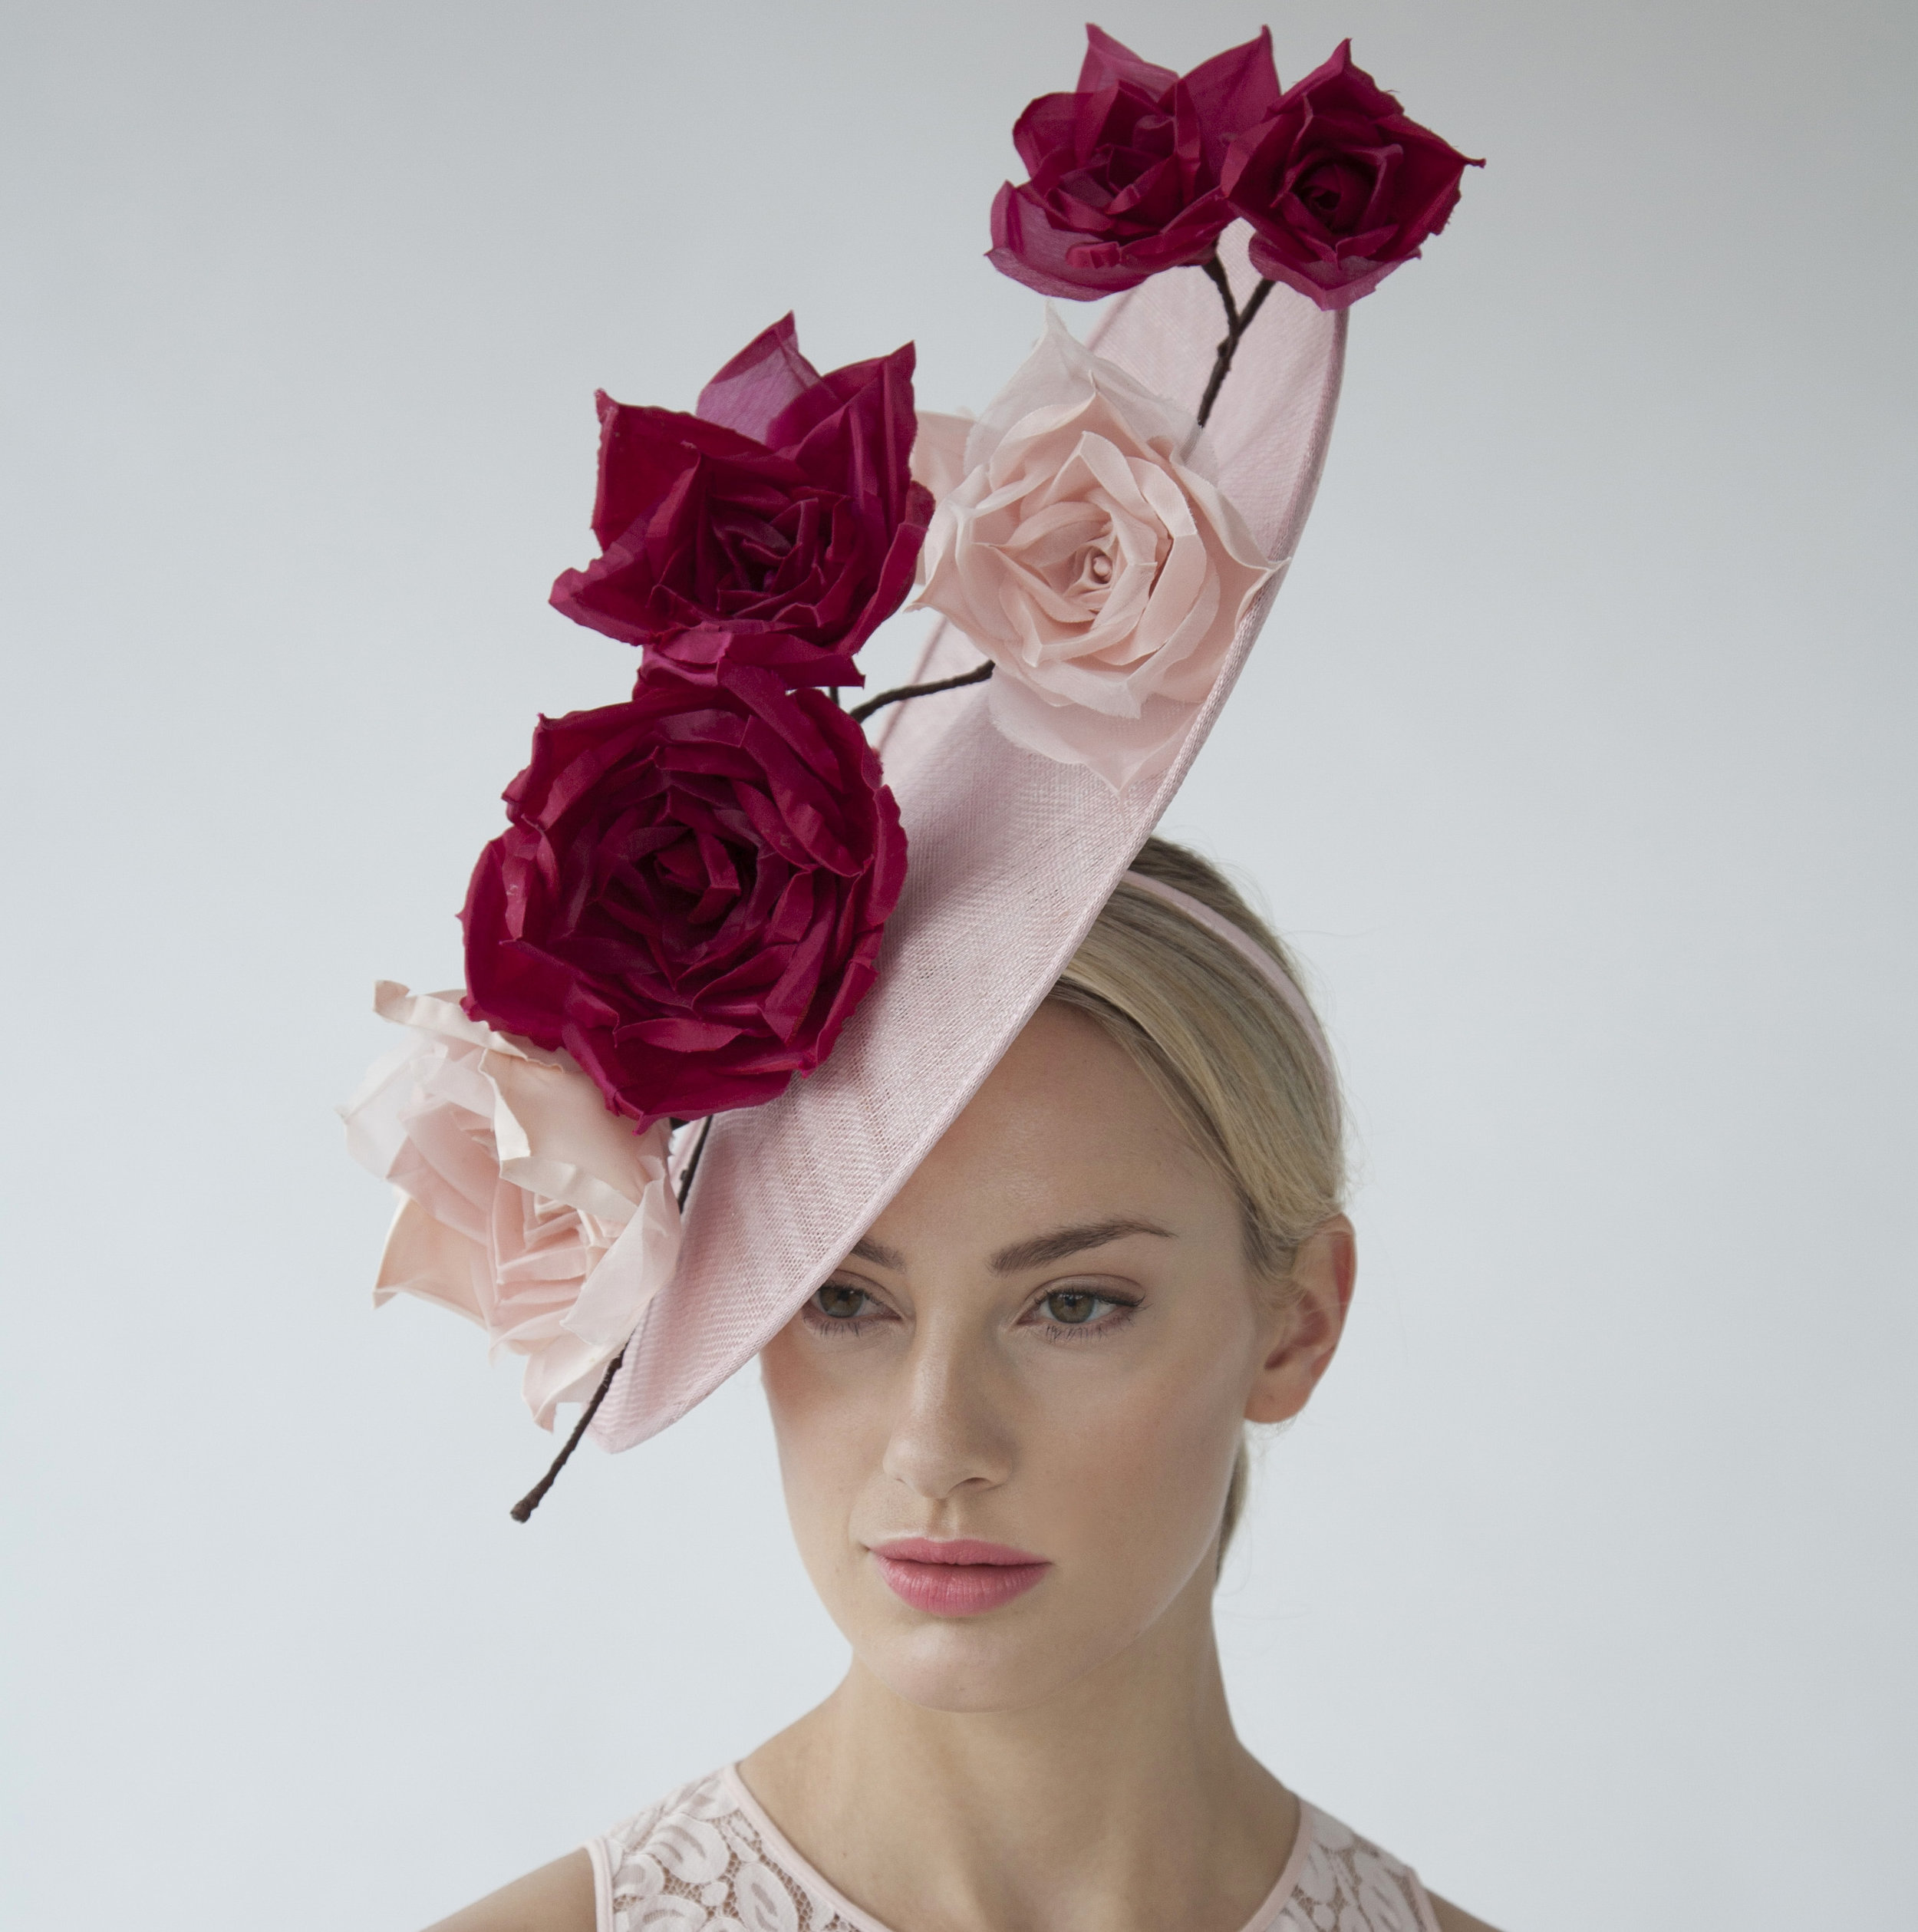 Creative millinery with Joanne Edwards - Joanne Edwards Millinery runs an exciting range of workshops for all abilities. Joanne will introduce you to new skills, develop existing ones and inspire you to get creating!